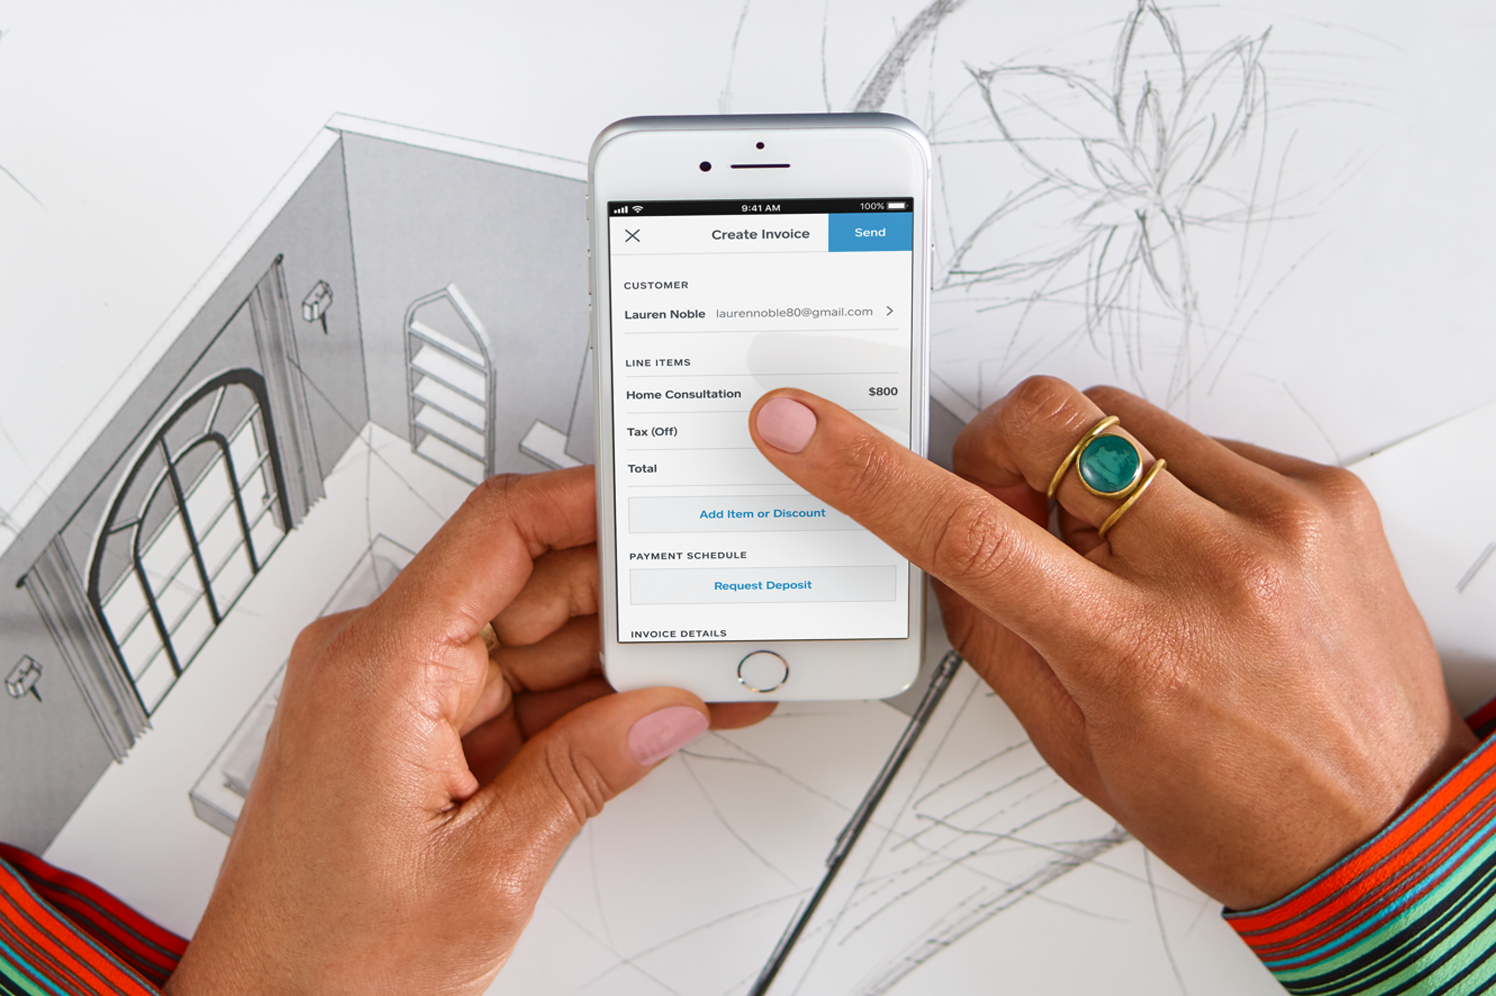 Invoicing on a mobile device